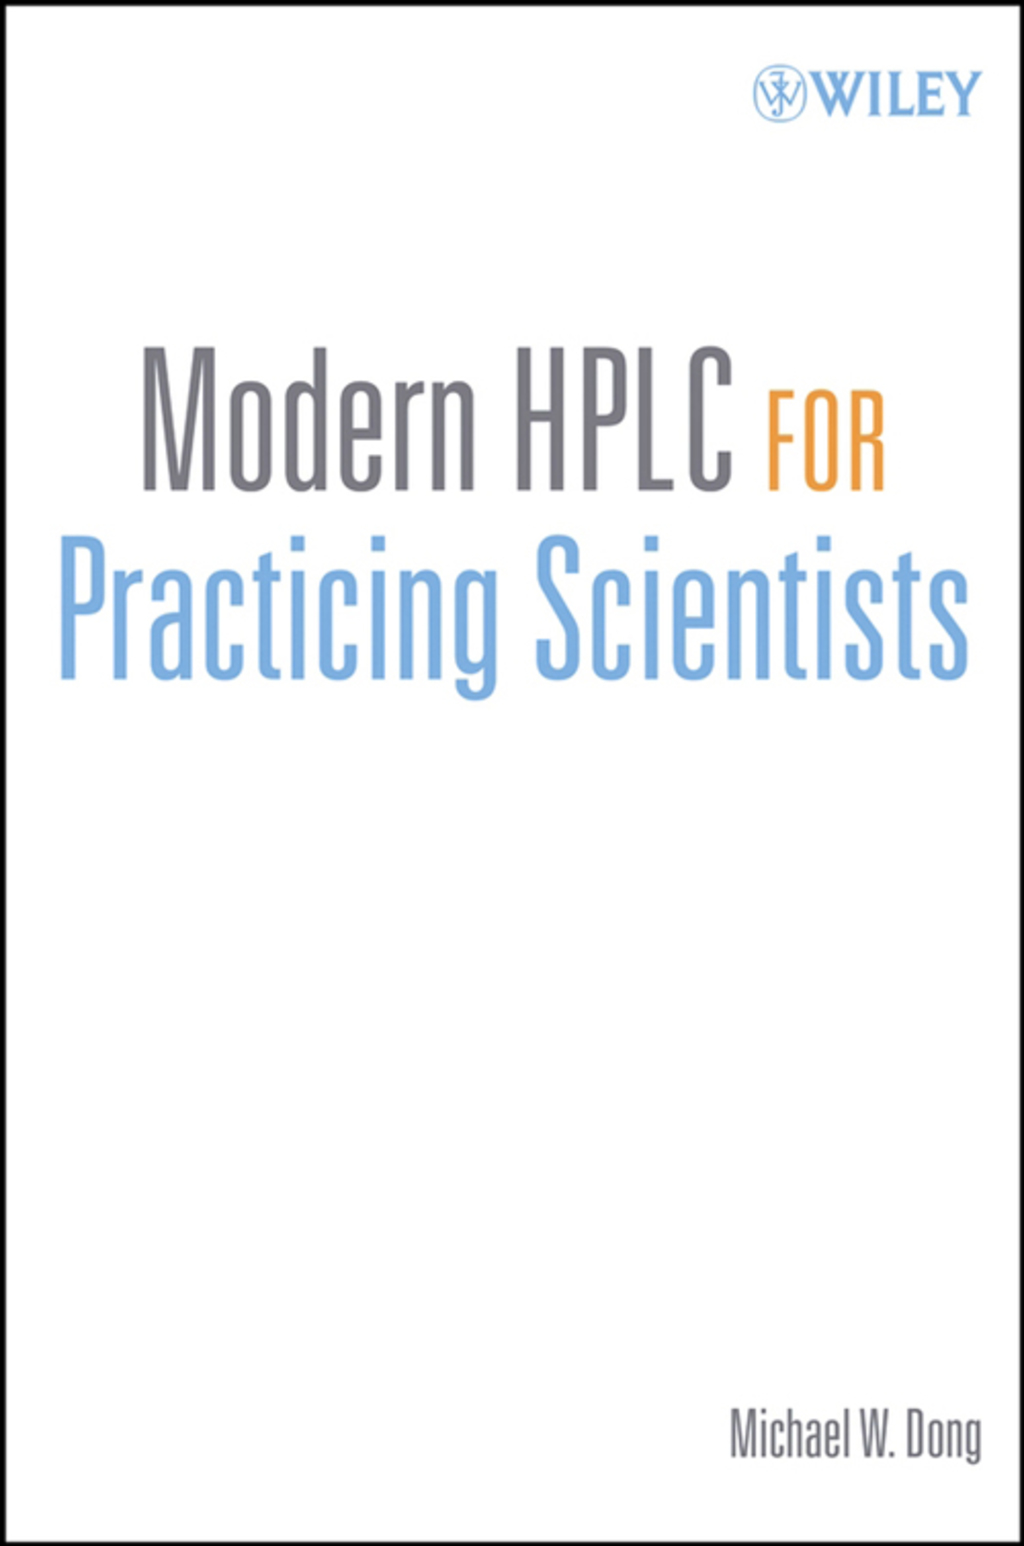 Modern HPLC for Practicing Scientists (ebook) eBooks